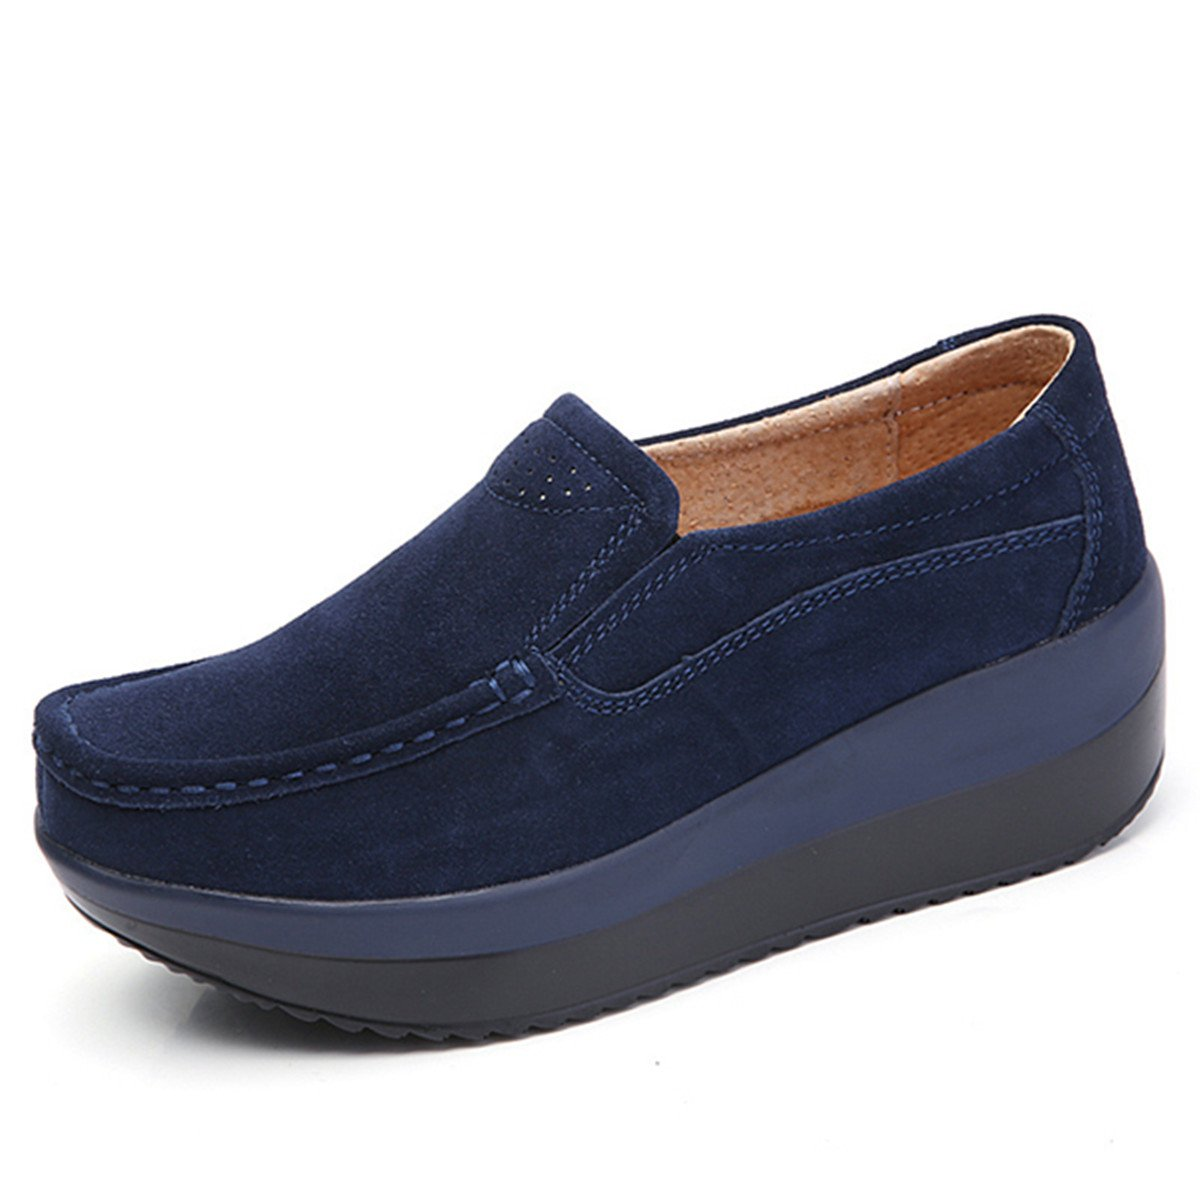 Gracosy Women's Platform Suede Shoe,Slip On Loafers Casual Rocker Sole Large Size Mid Heels Wide Low Top Wedge Comfort Shoes